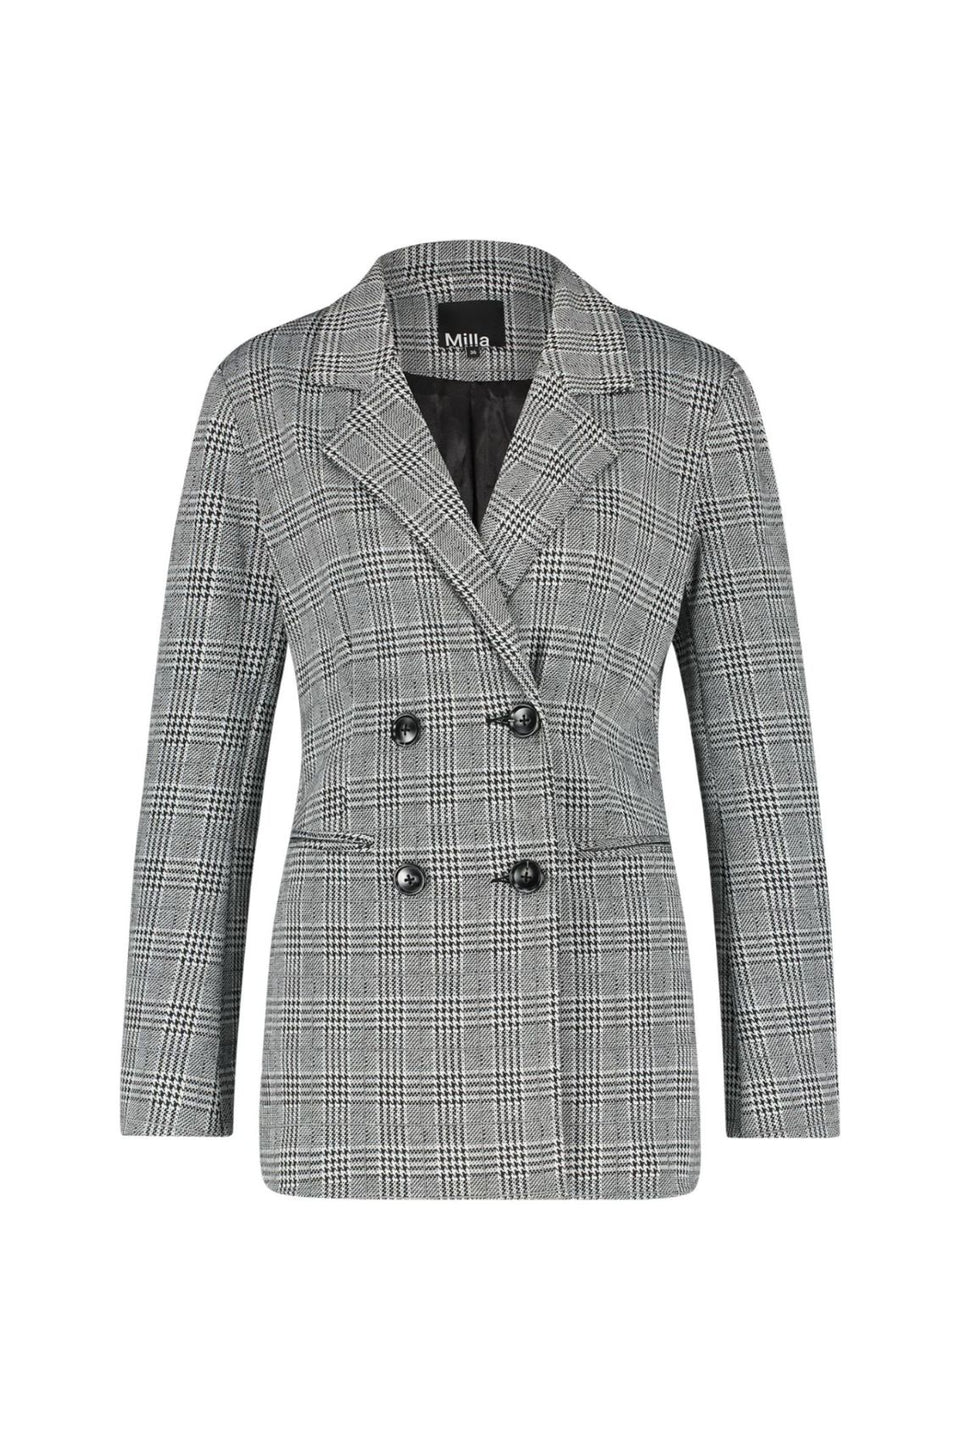 Joline Blazer - Black White Check